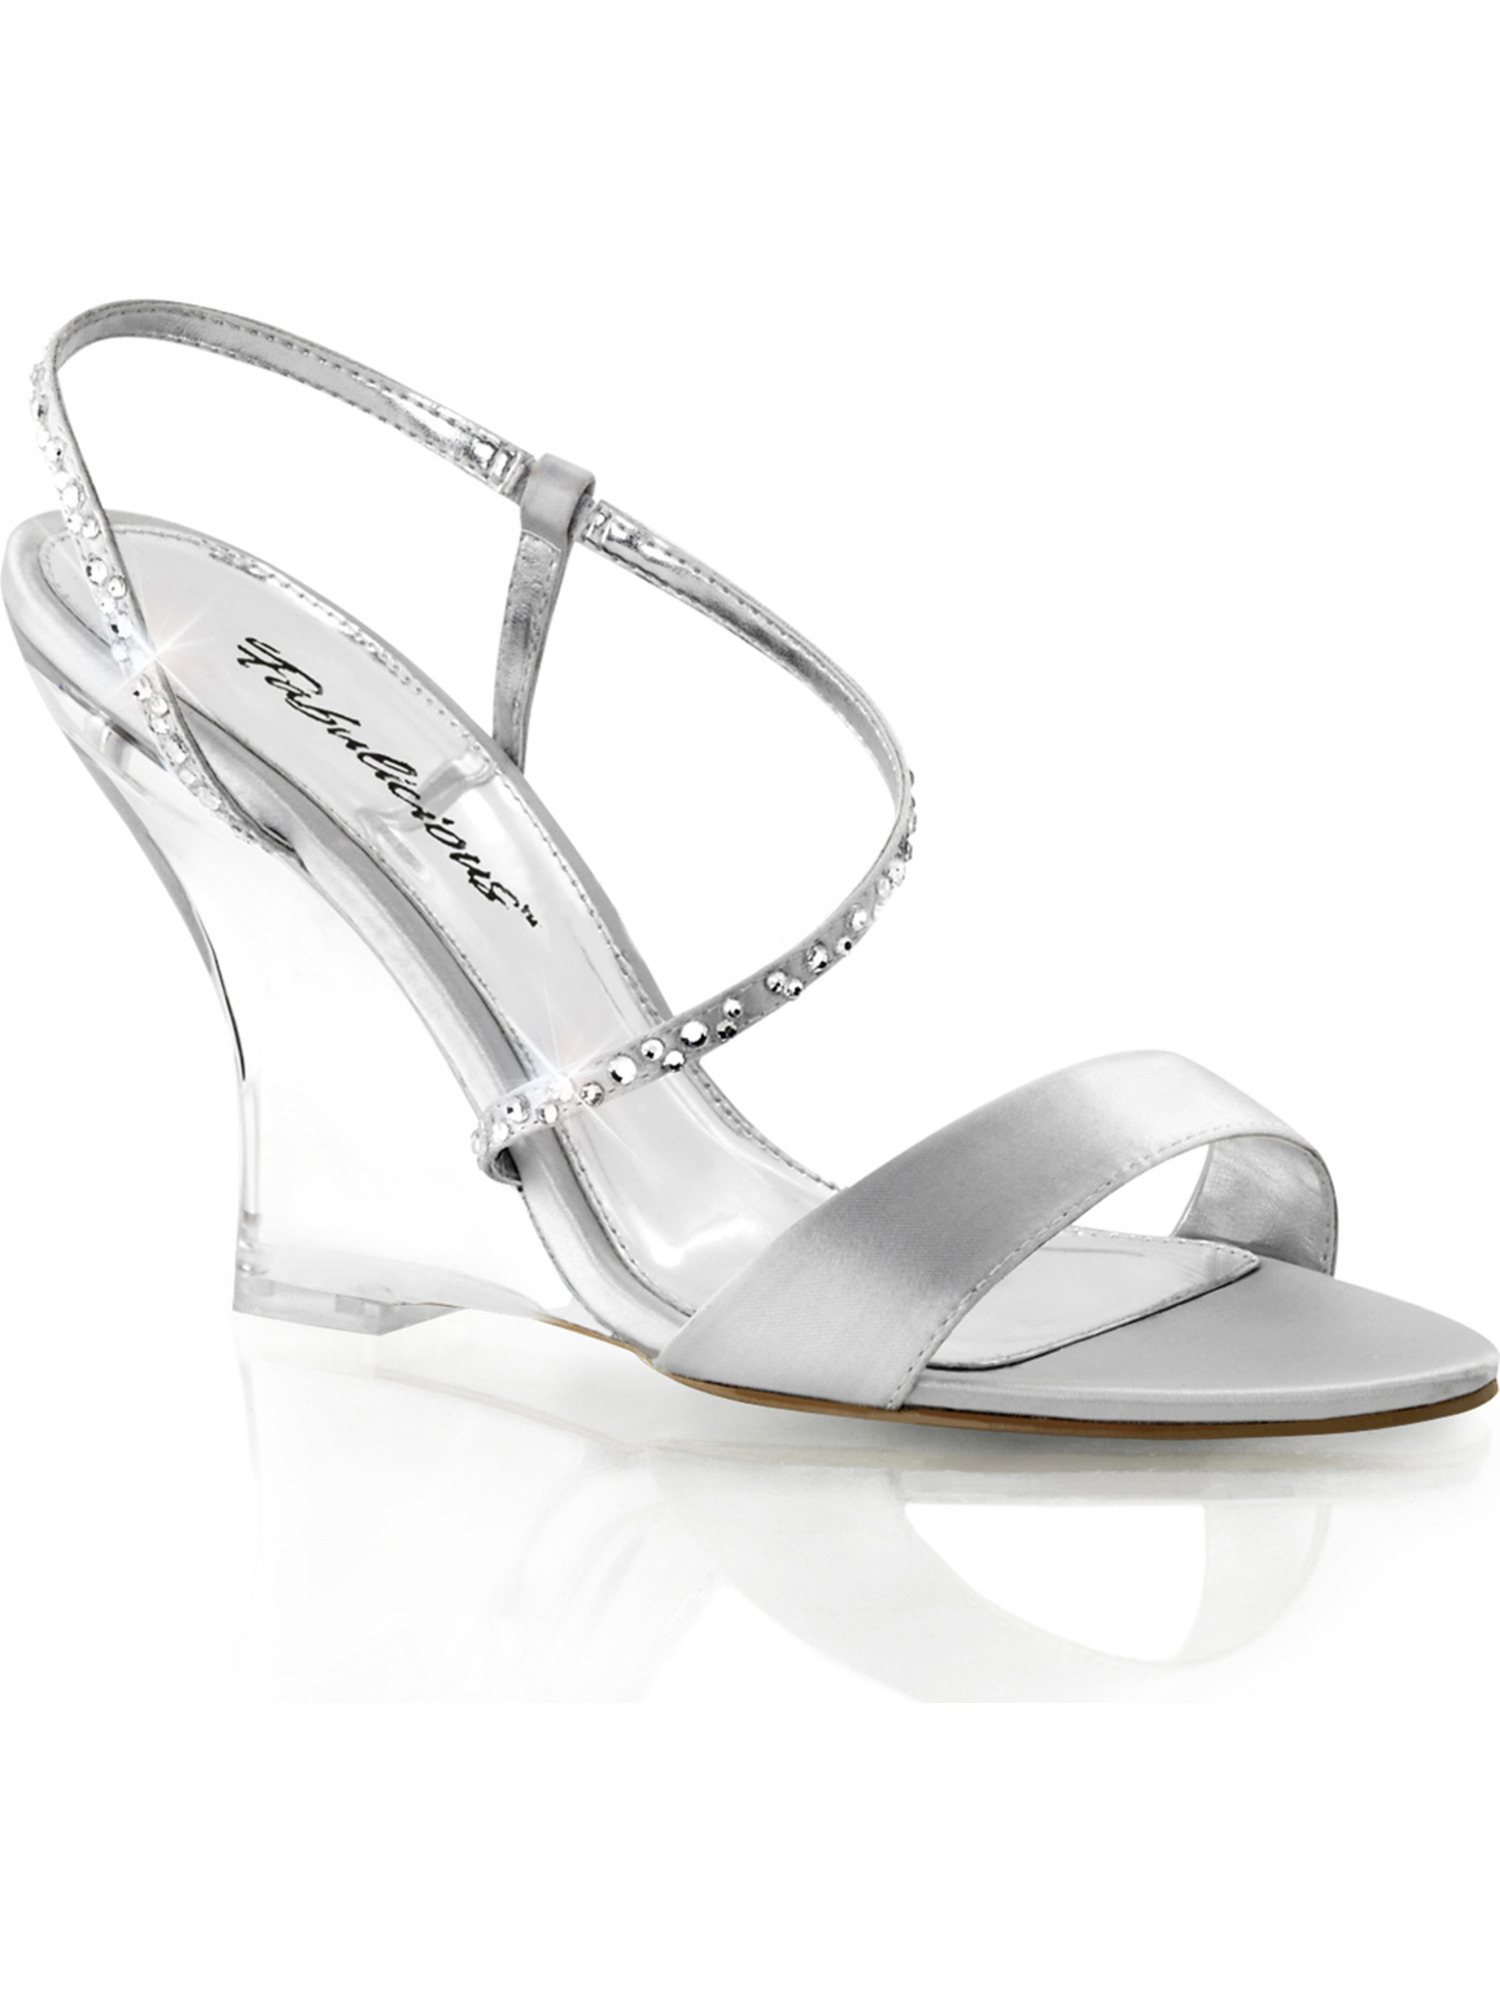 Womens Silver Satin and Rhinestone Wedges Sandals Shoes 4'' Clear Wedge Heels